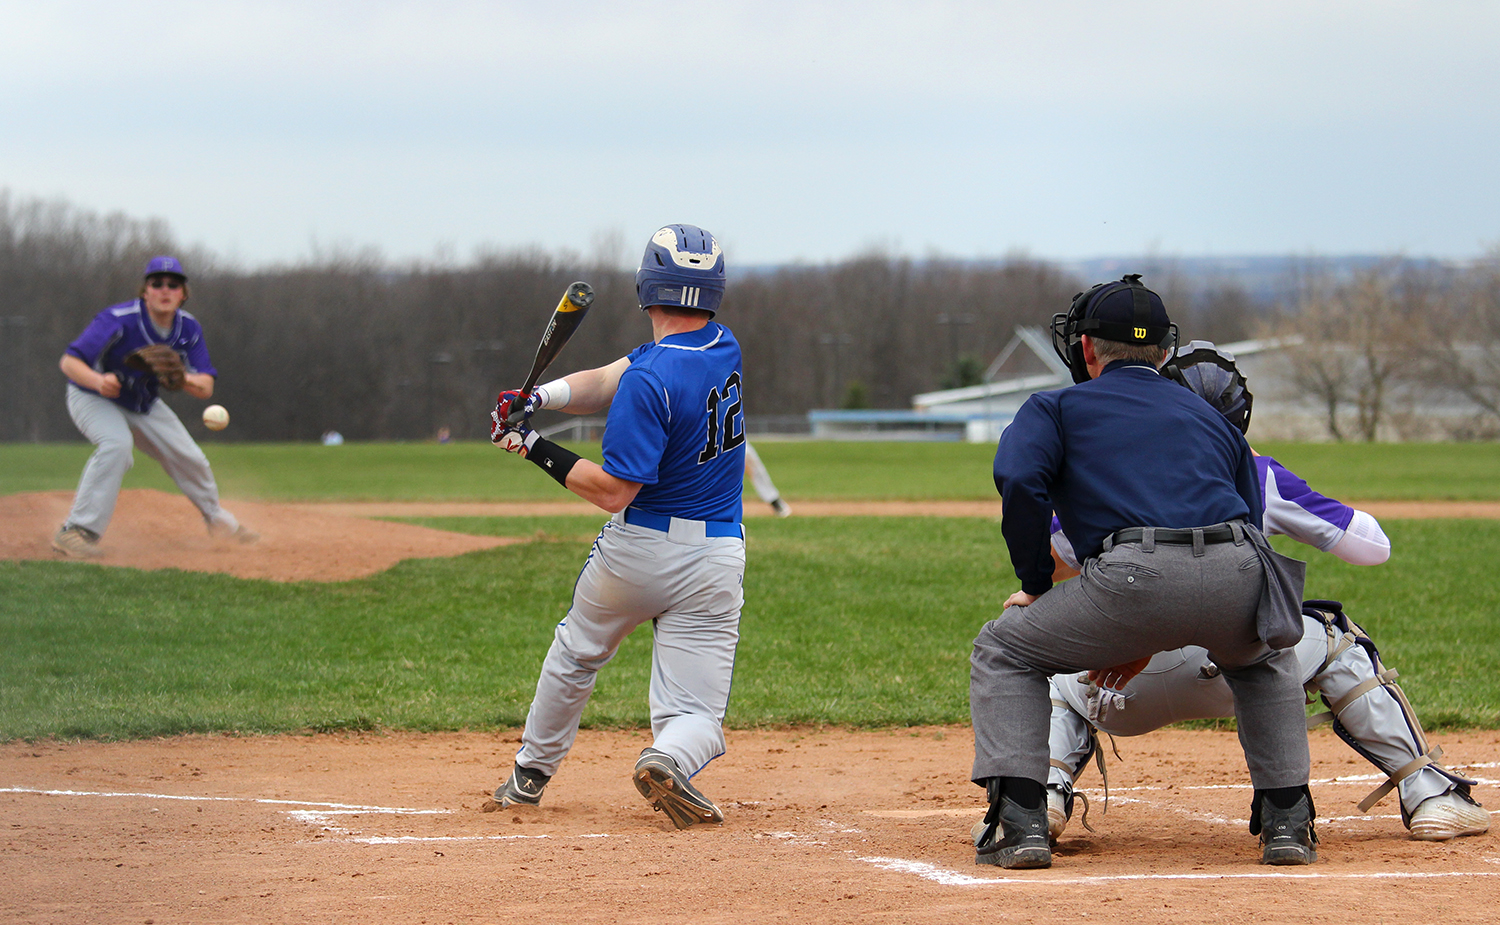 Boys Baseball: Geneseo Blows Out Pavilion in Home Opener